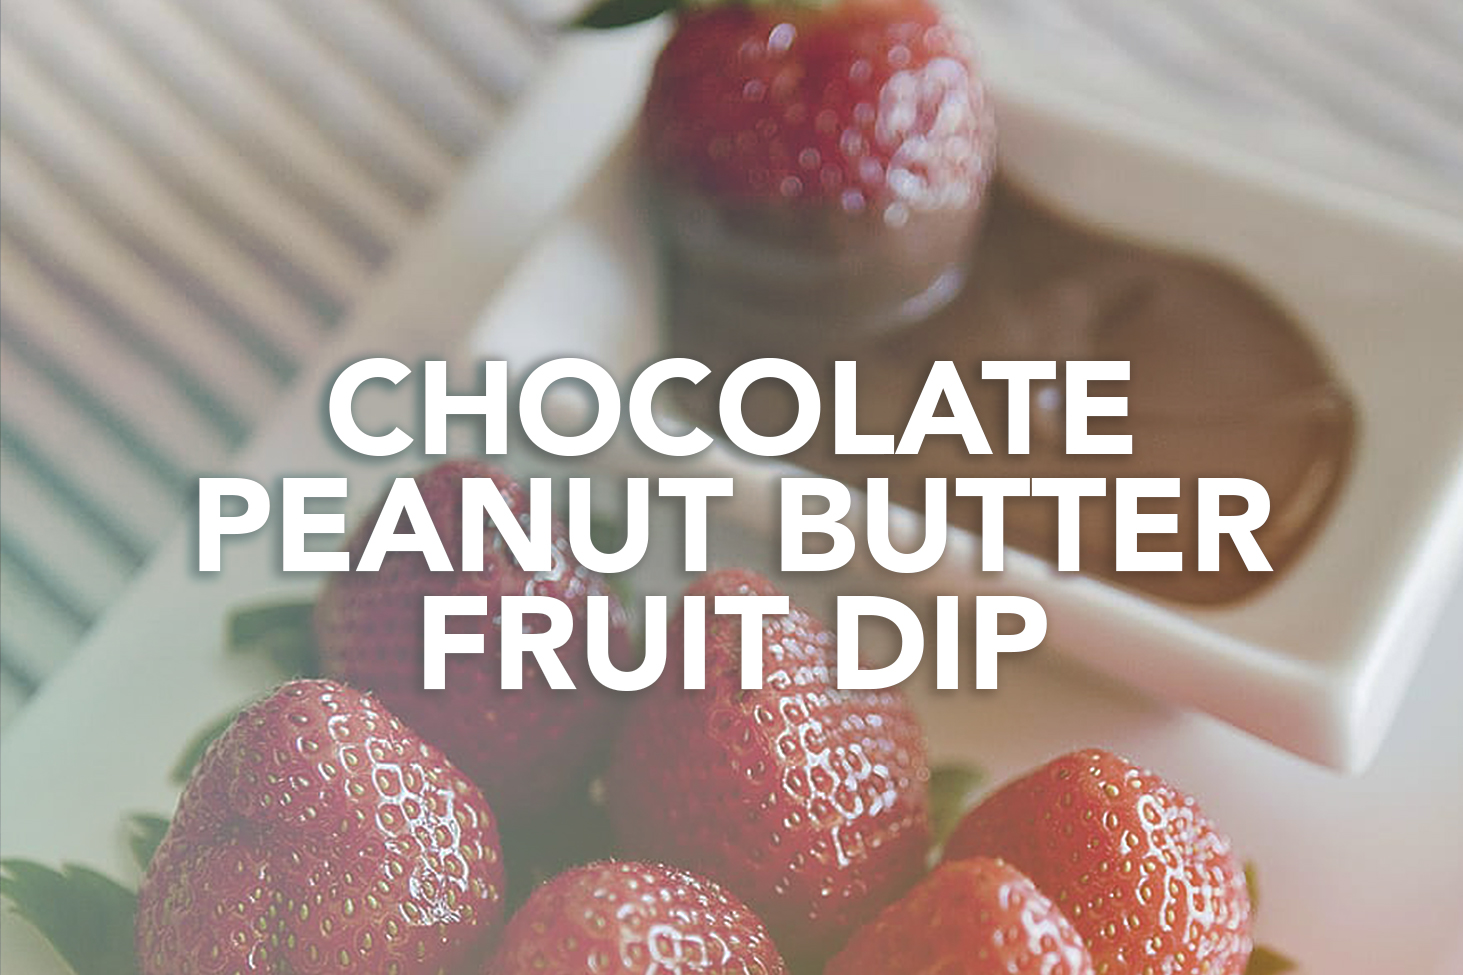 Rivalus At Home Recipes: Chocolate Peanut Butter Fruit Dip